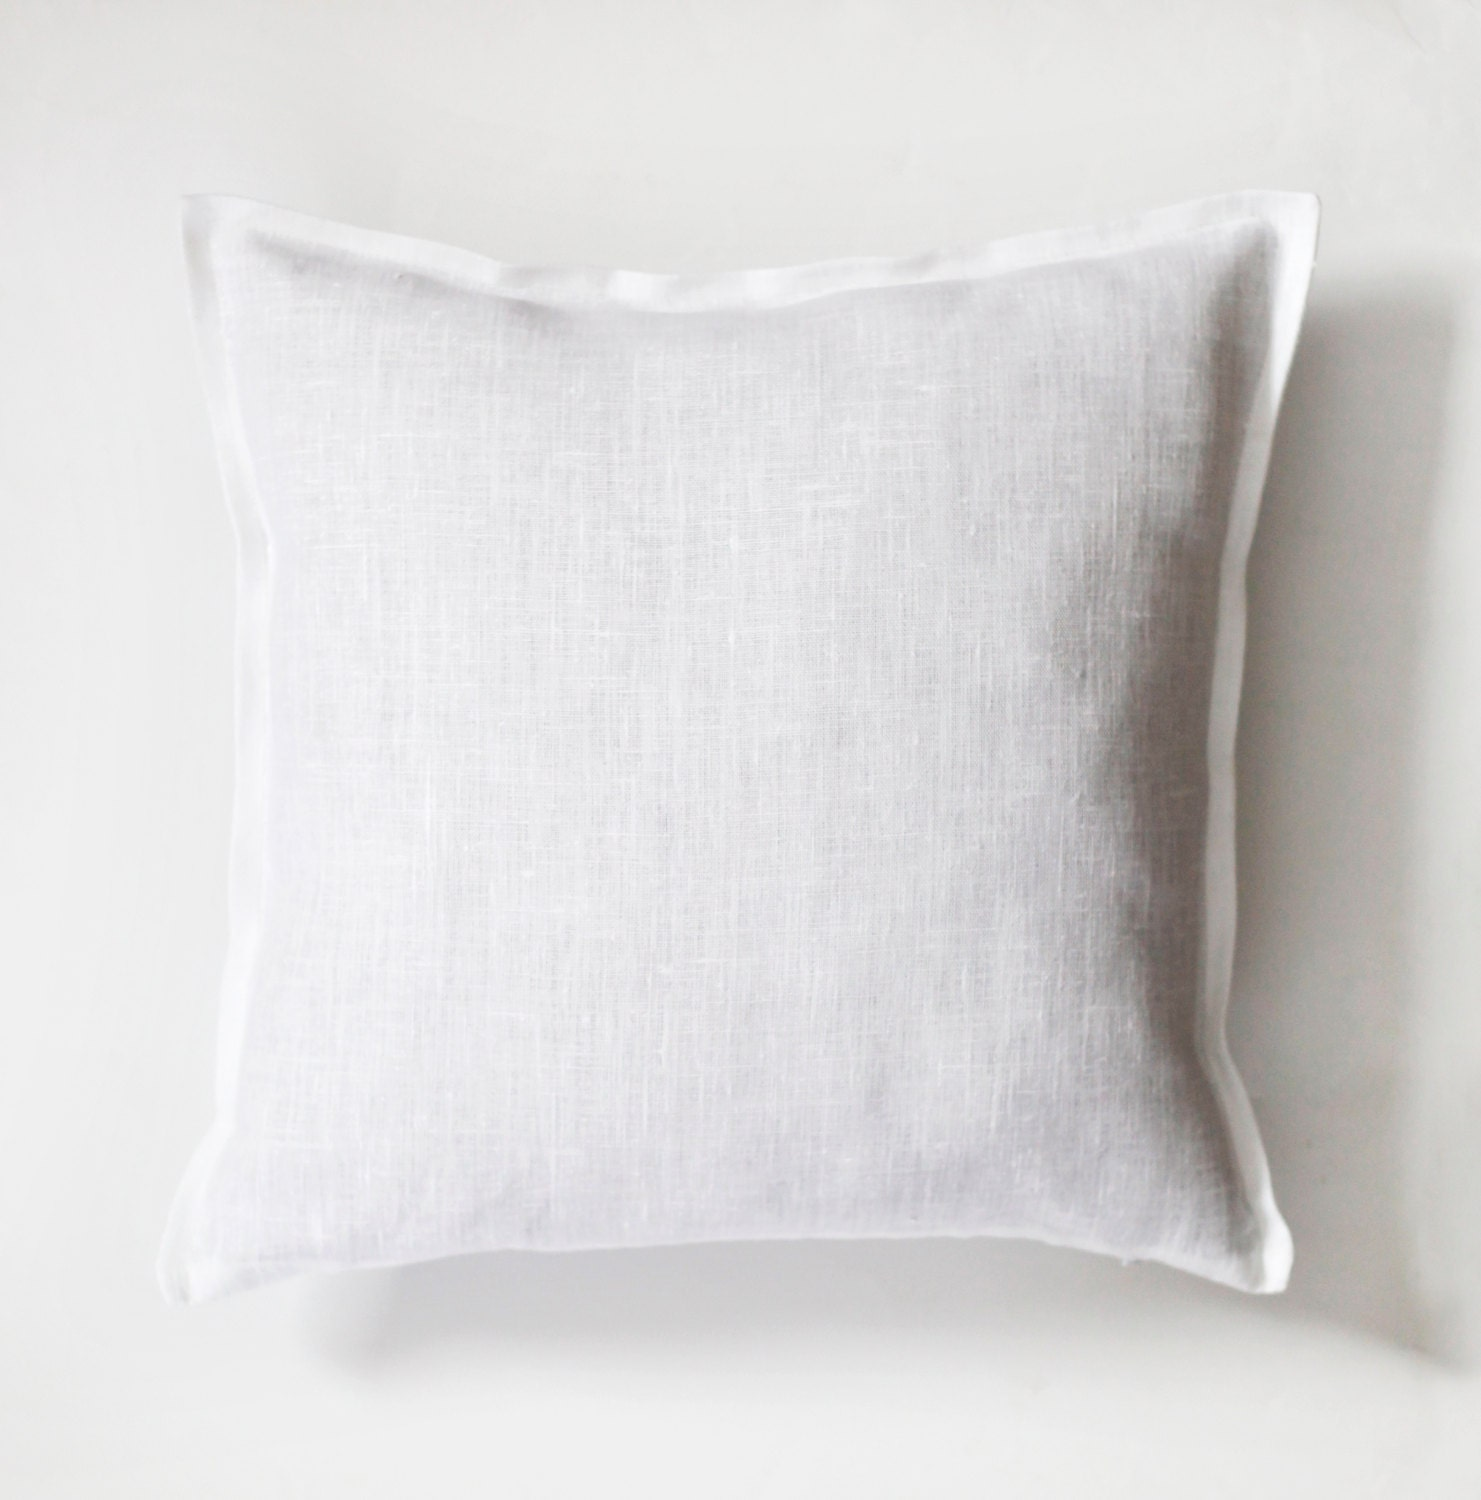 Throw Pillow Cover Fabric : White pillow white pillow cover white natural fabric